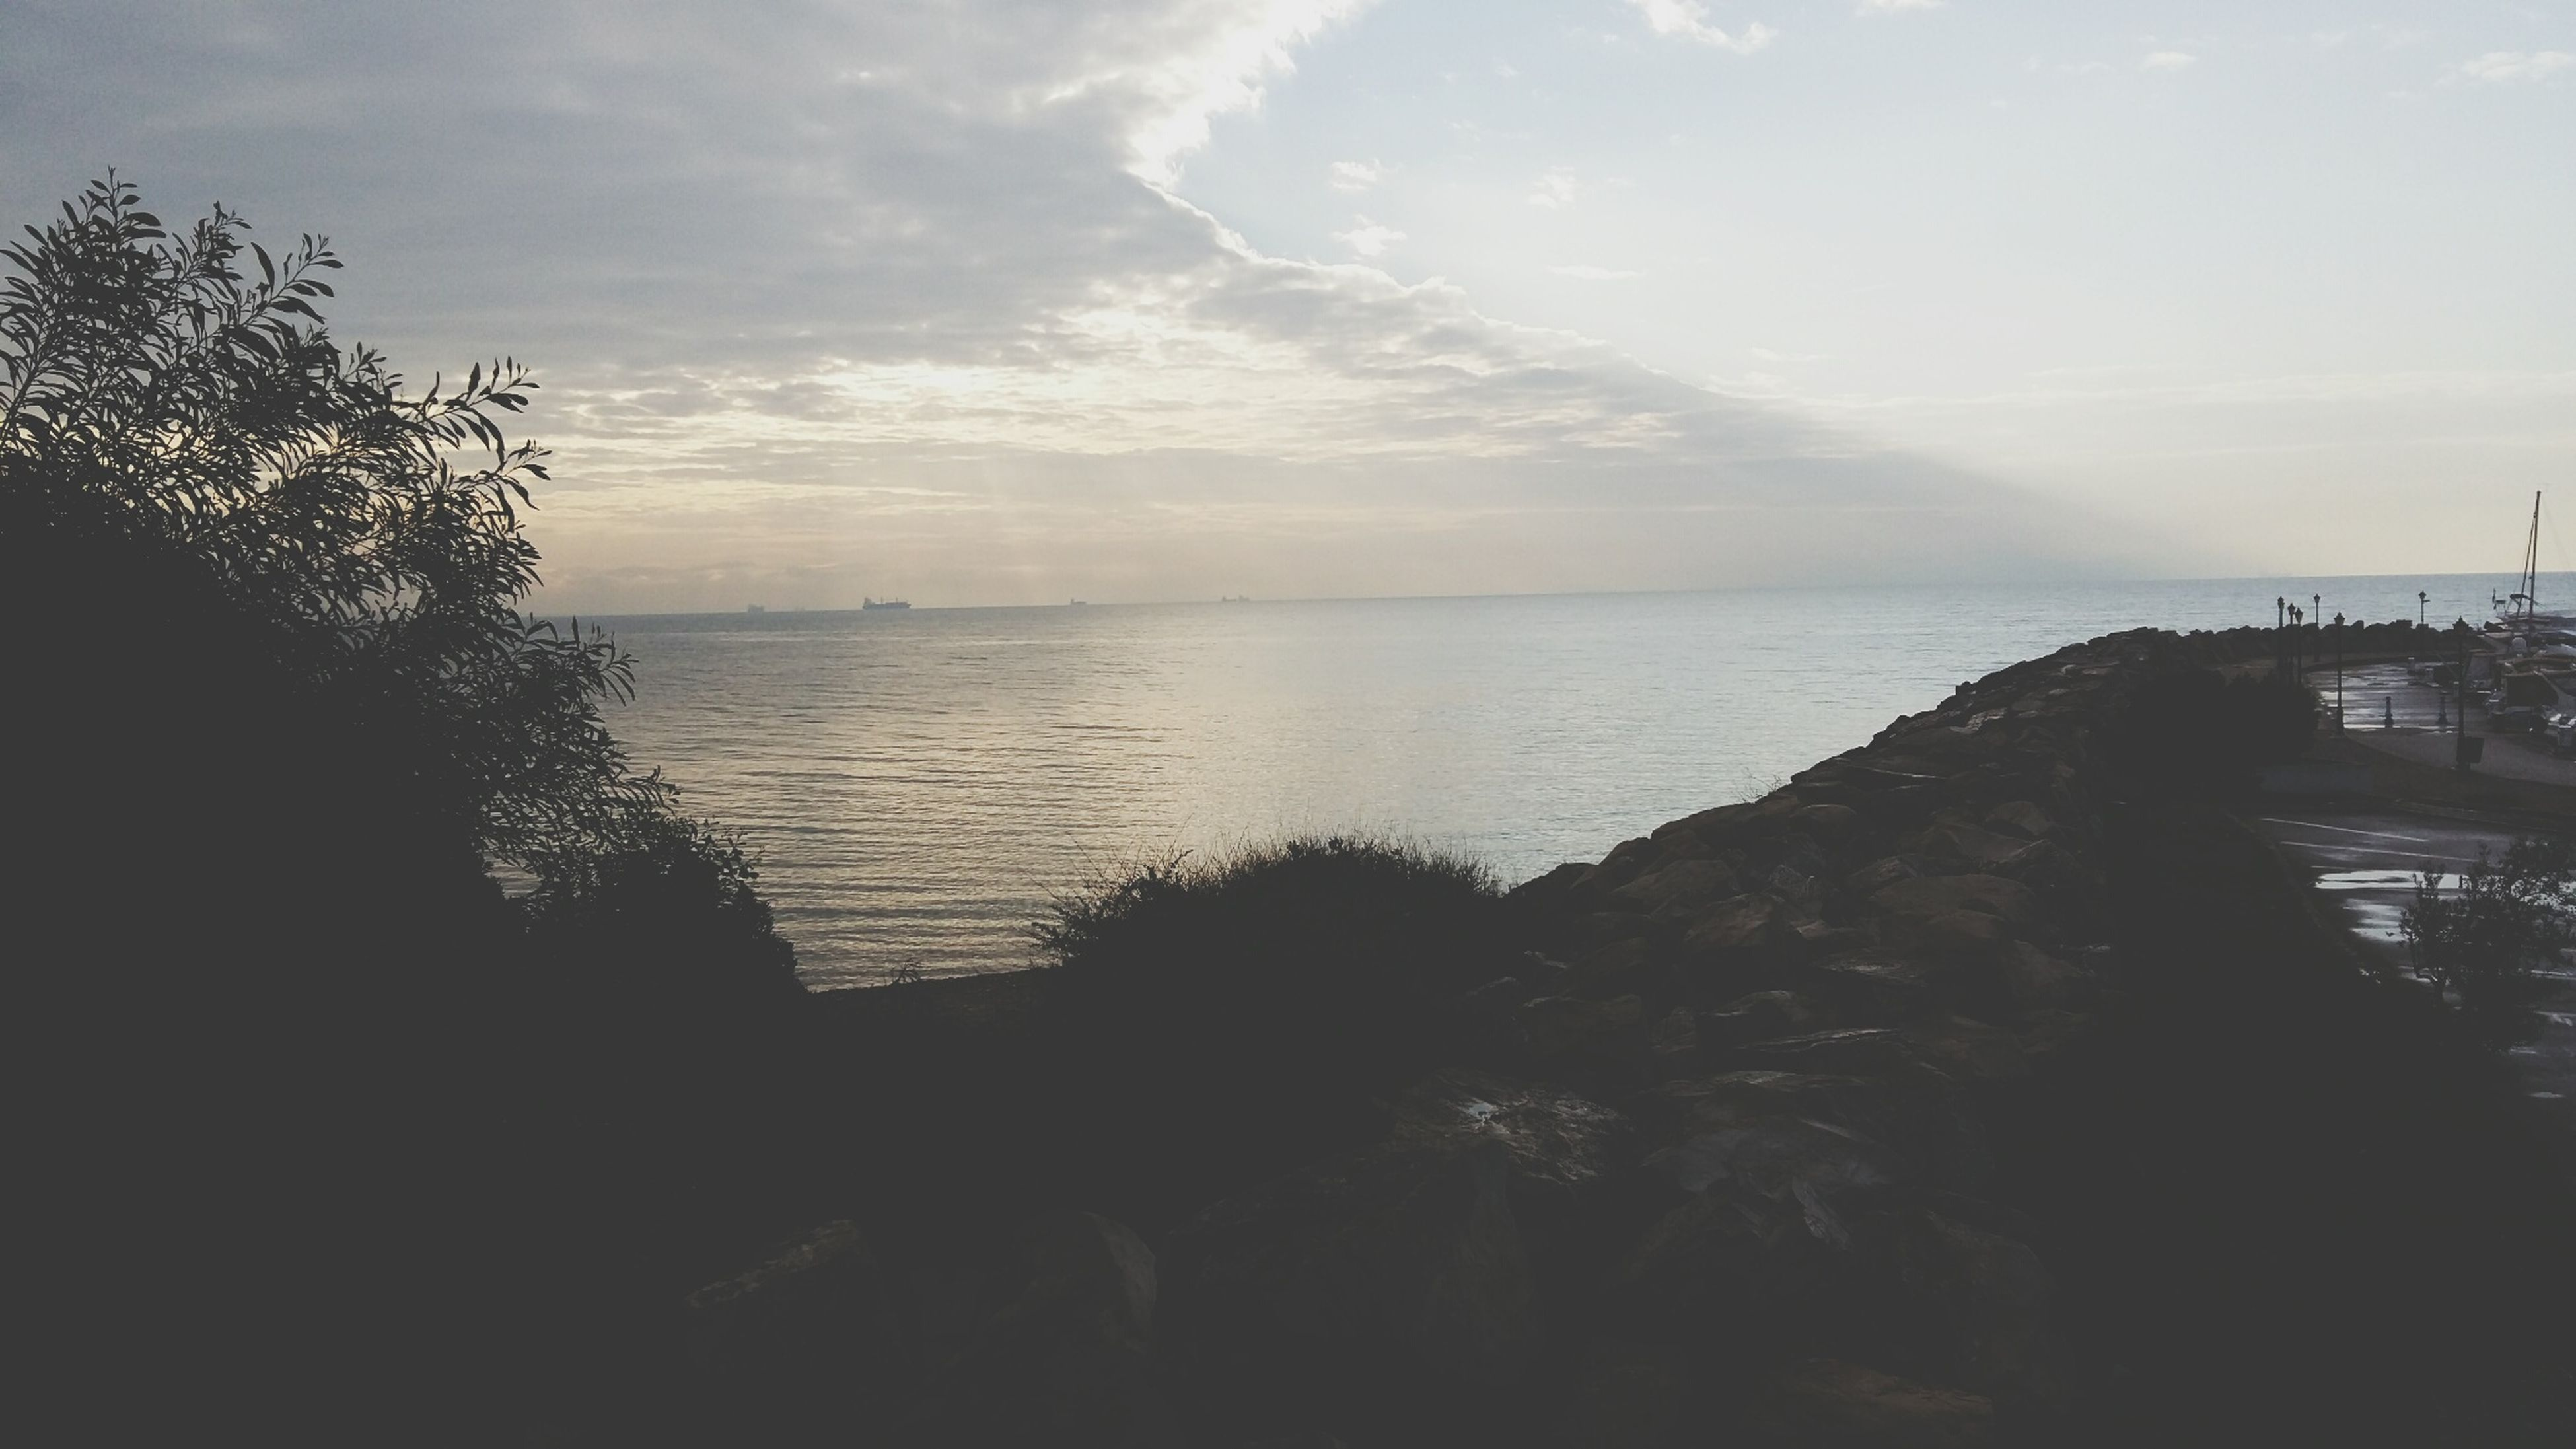 sea, water, horizon over water, sky, tranquil scene, scenics, tranquility, beauty in nature, beach, nature, silhouette, shore, idyllic, sunset, cloud - sky, tree, cloud, outdoors, calm, remote